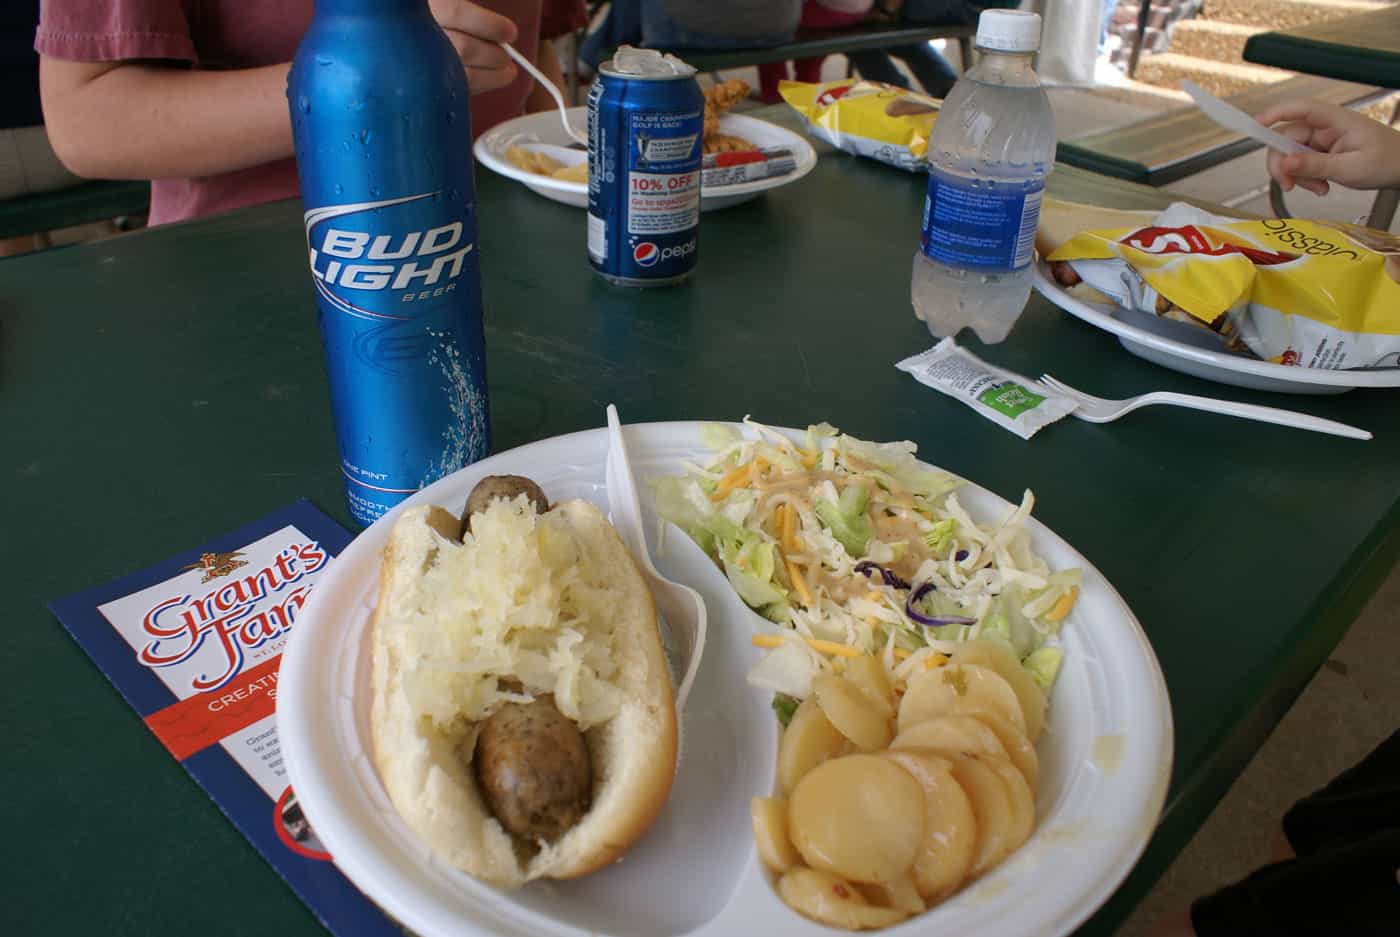 Lunch at Grant's Farm: brat on bun with sauerkraut, potato salad and green salad on paper plate with Bud Light.